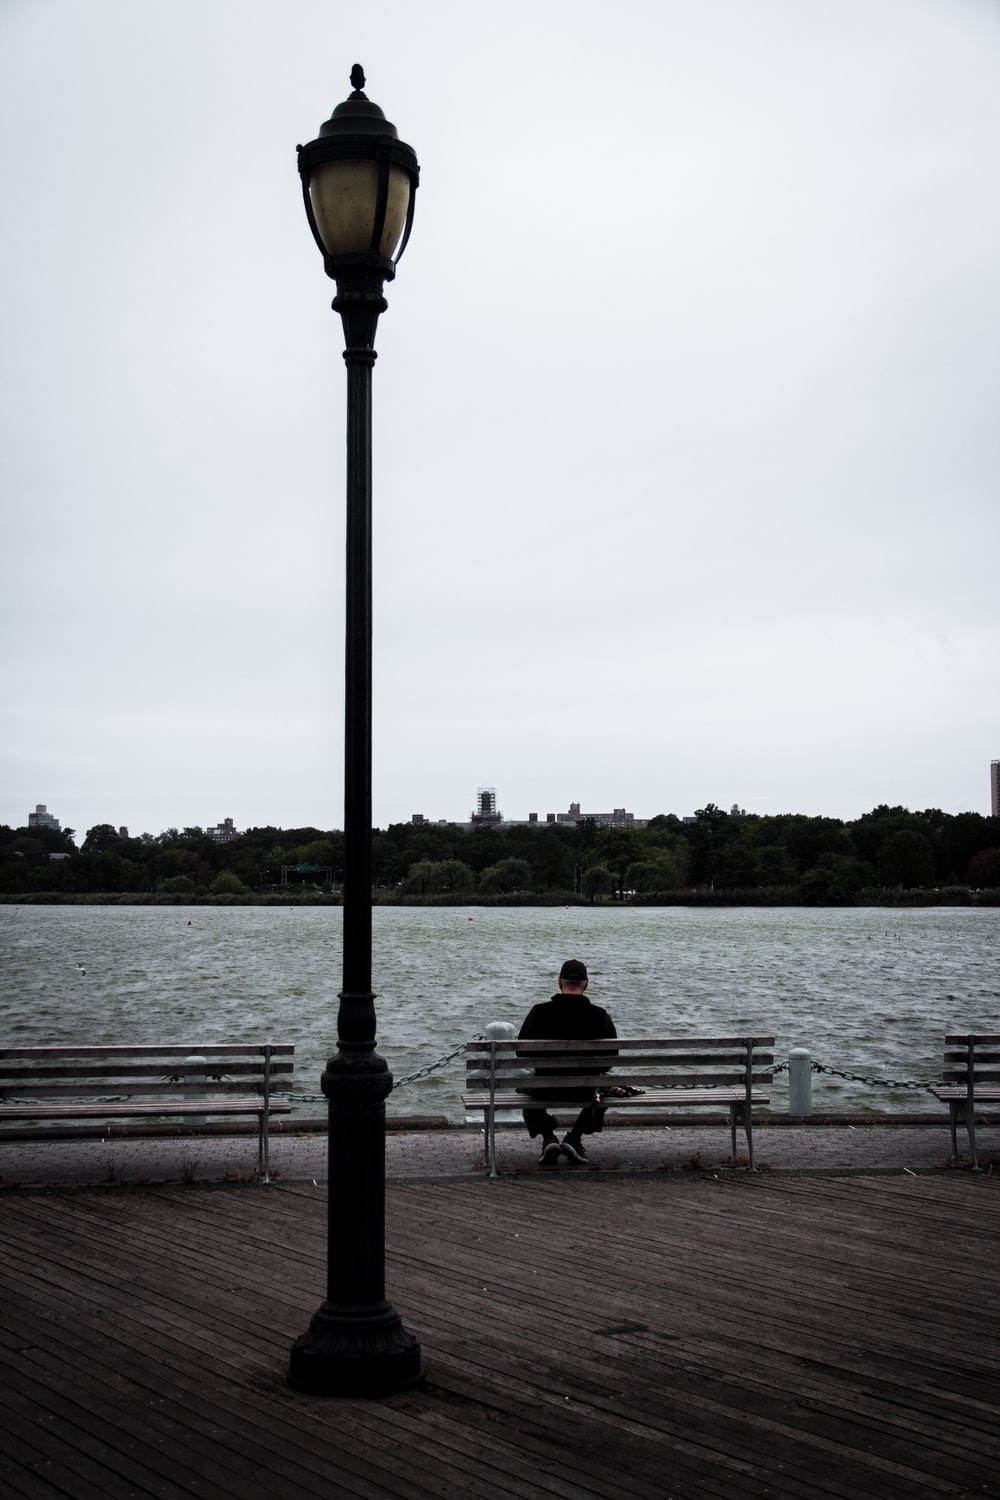 man siting on bench